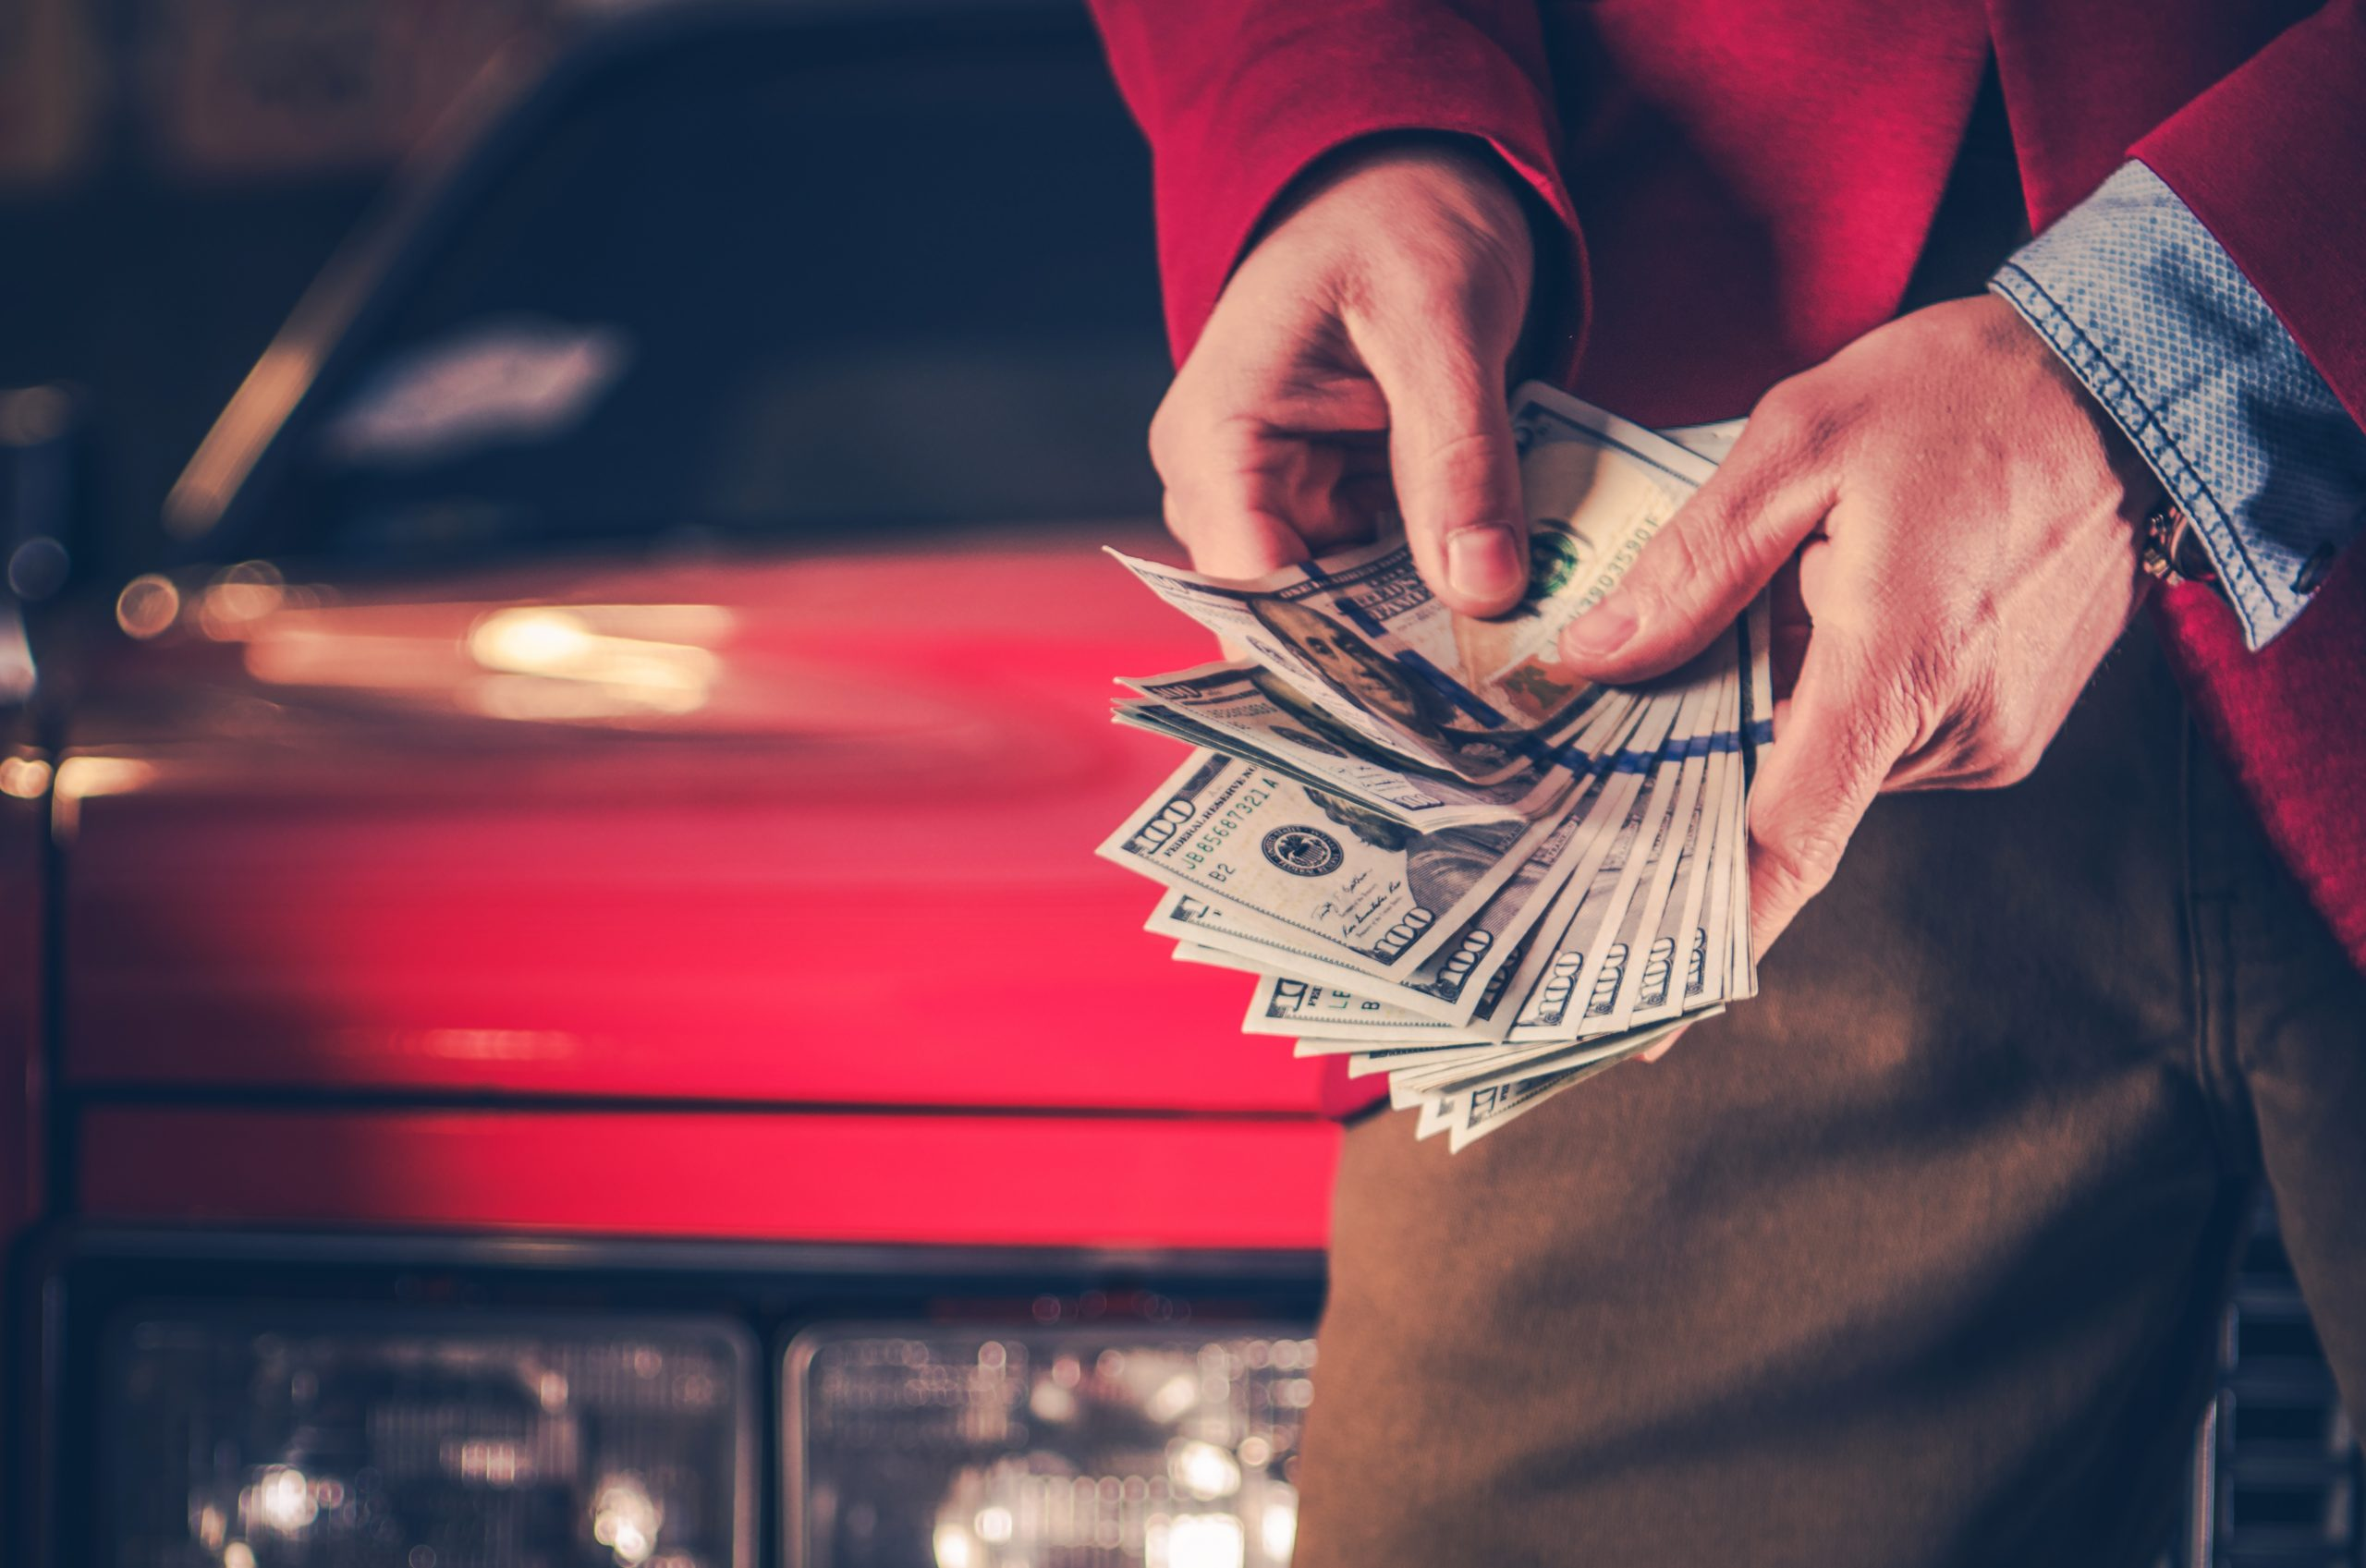 Cash for Junk Cars NJ: What Do I Do with My Totaled Car?